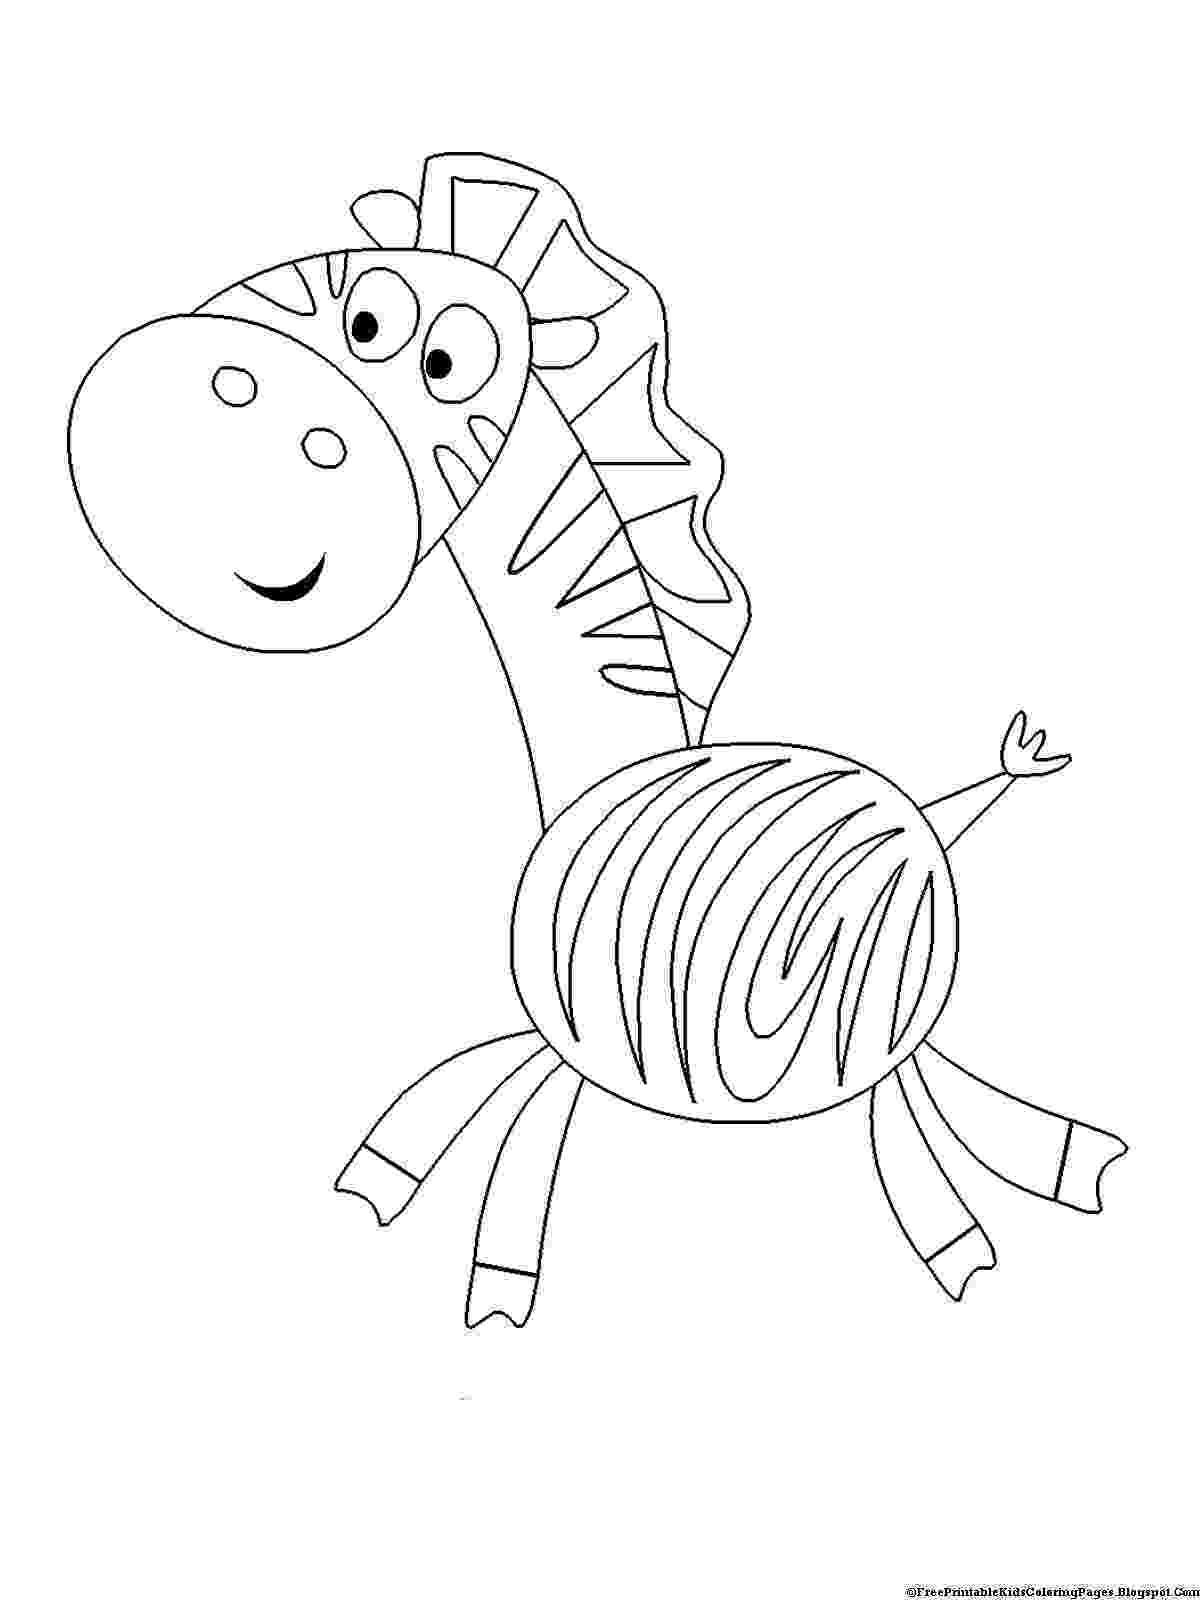 coloring book pages to print free transmissionpress disney coloring pages free disney free coloring book to print pages